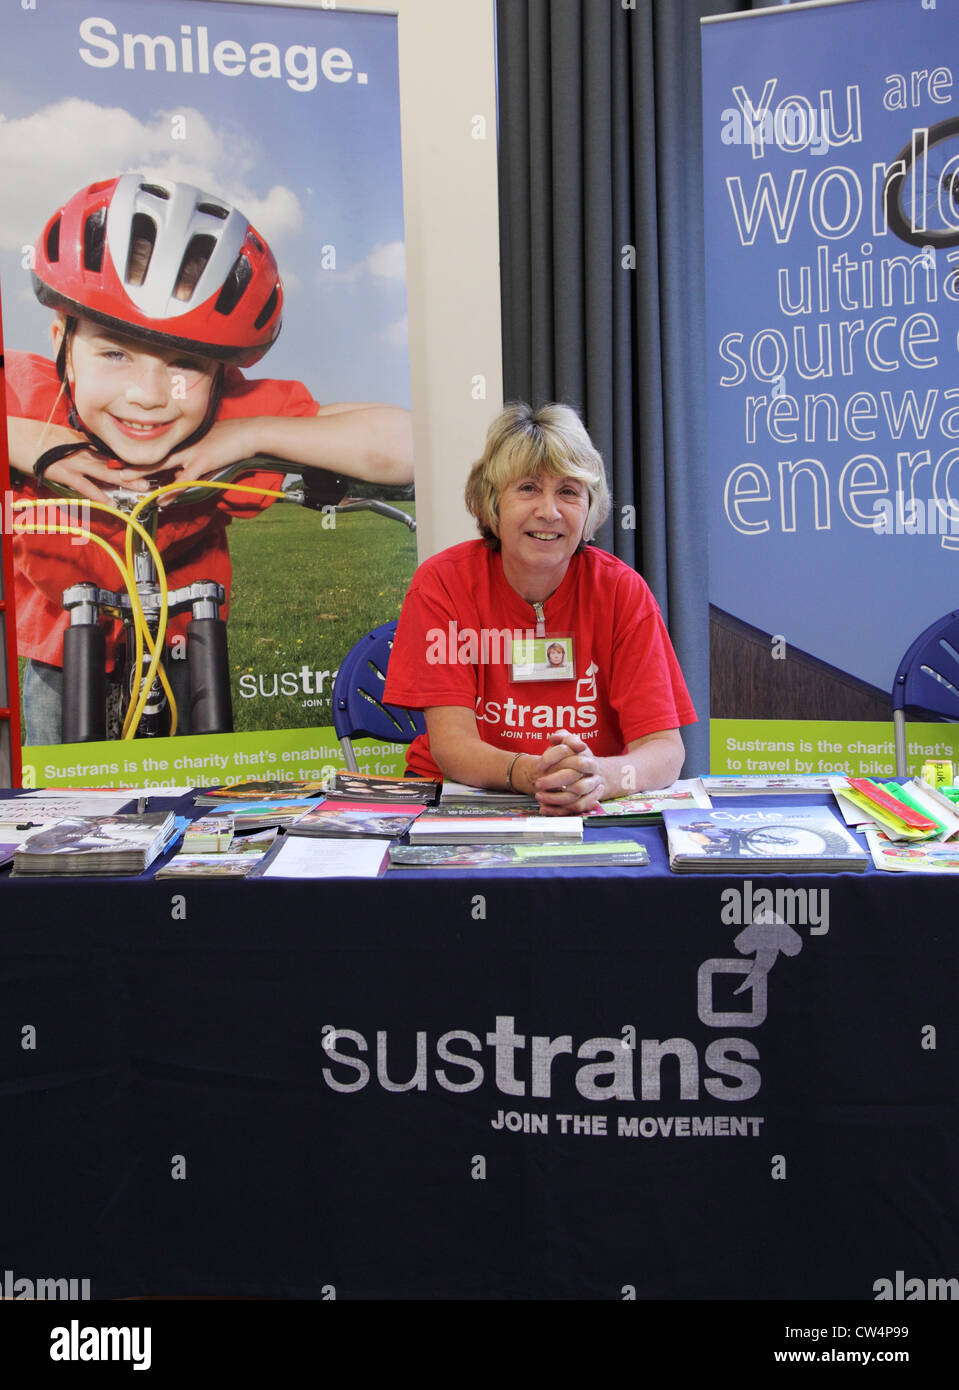 smiling-sustrans-woman-volunteer-sitting